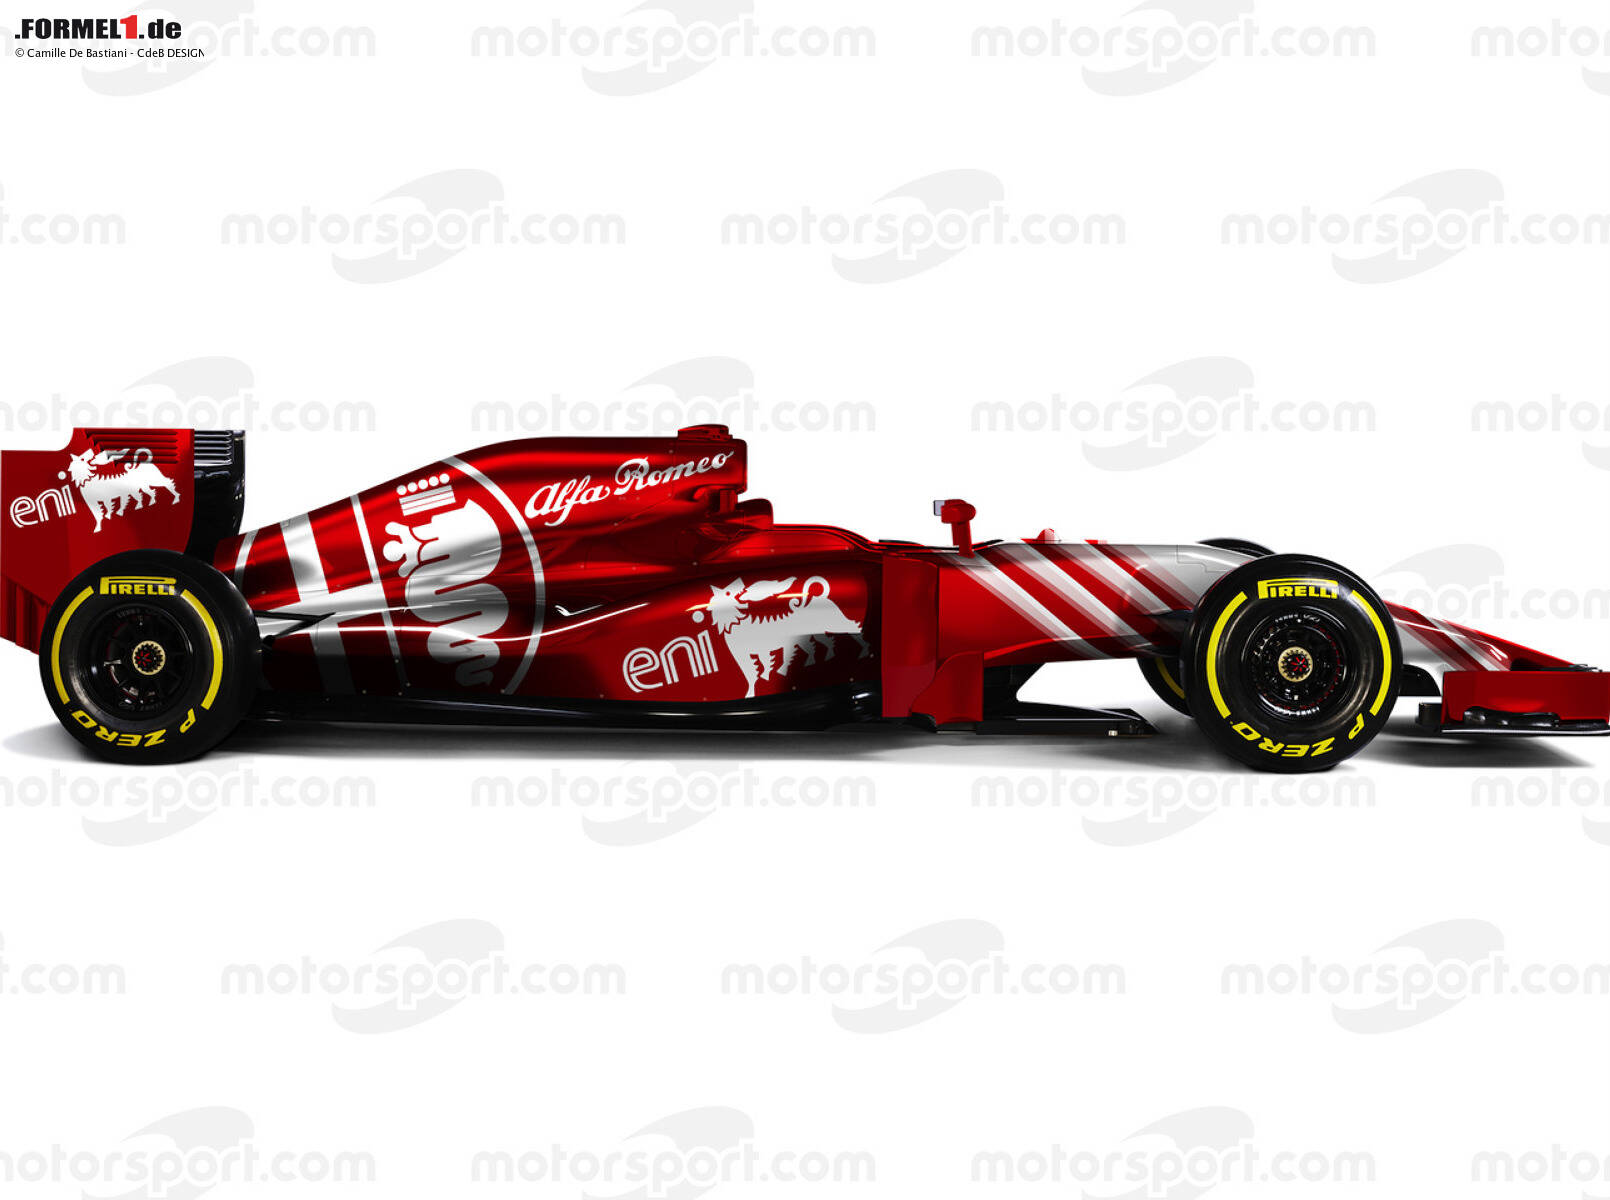 formel 1 2018 alfa romeo wird sauber hauptsponsor. Black Bedroom Furniture Sets. Home Design Ideas